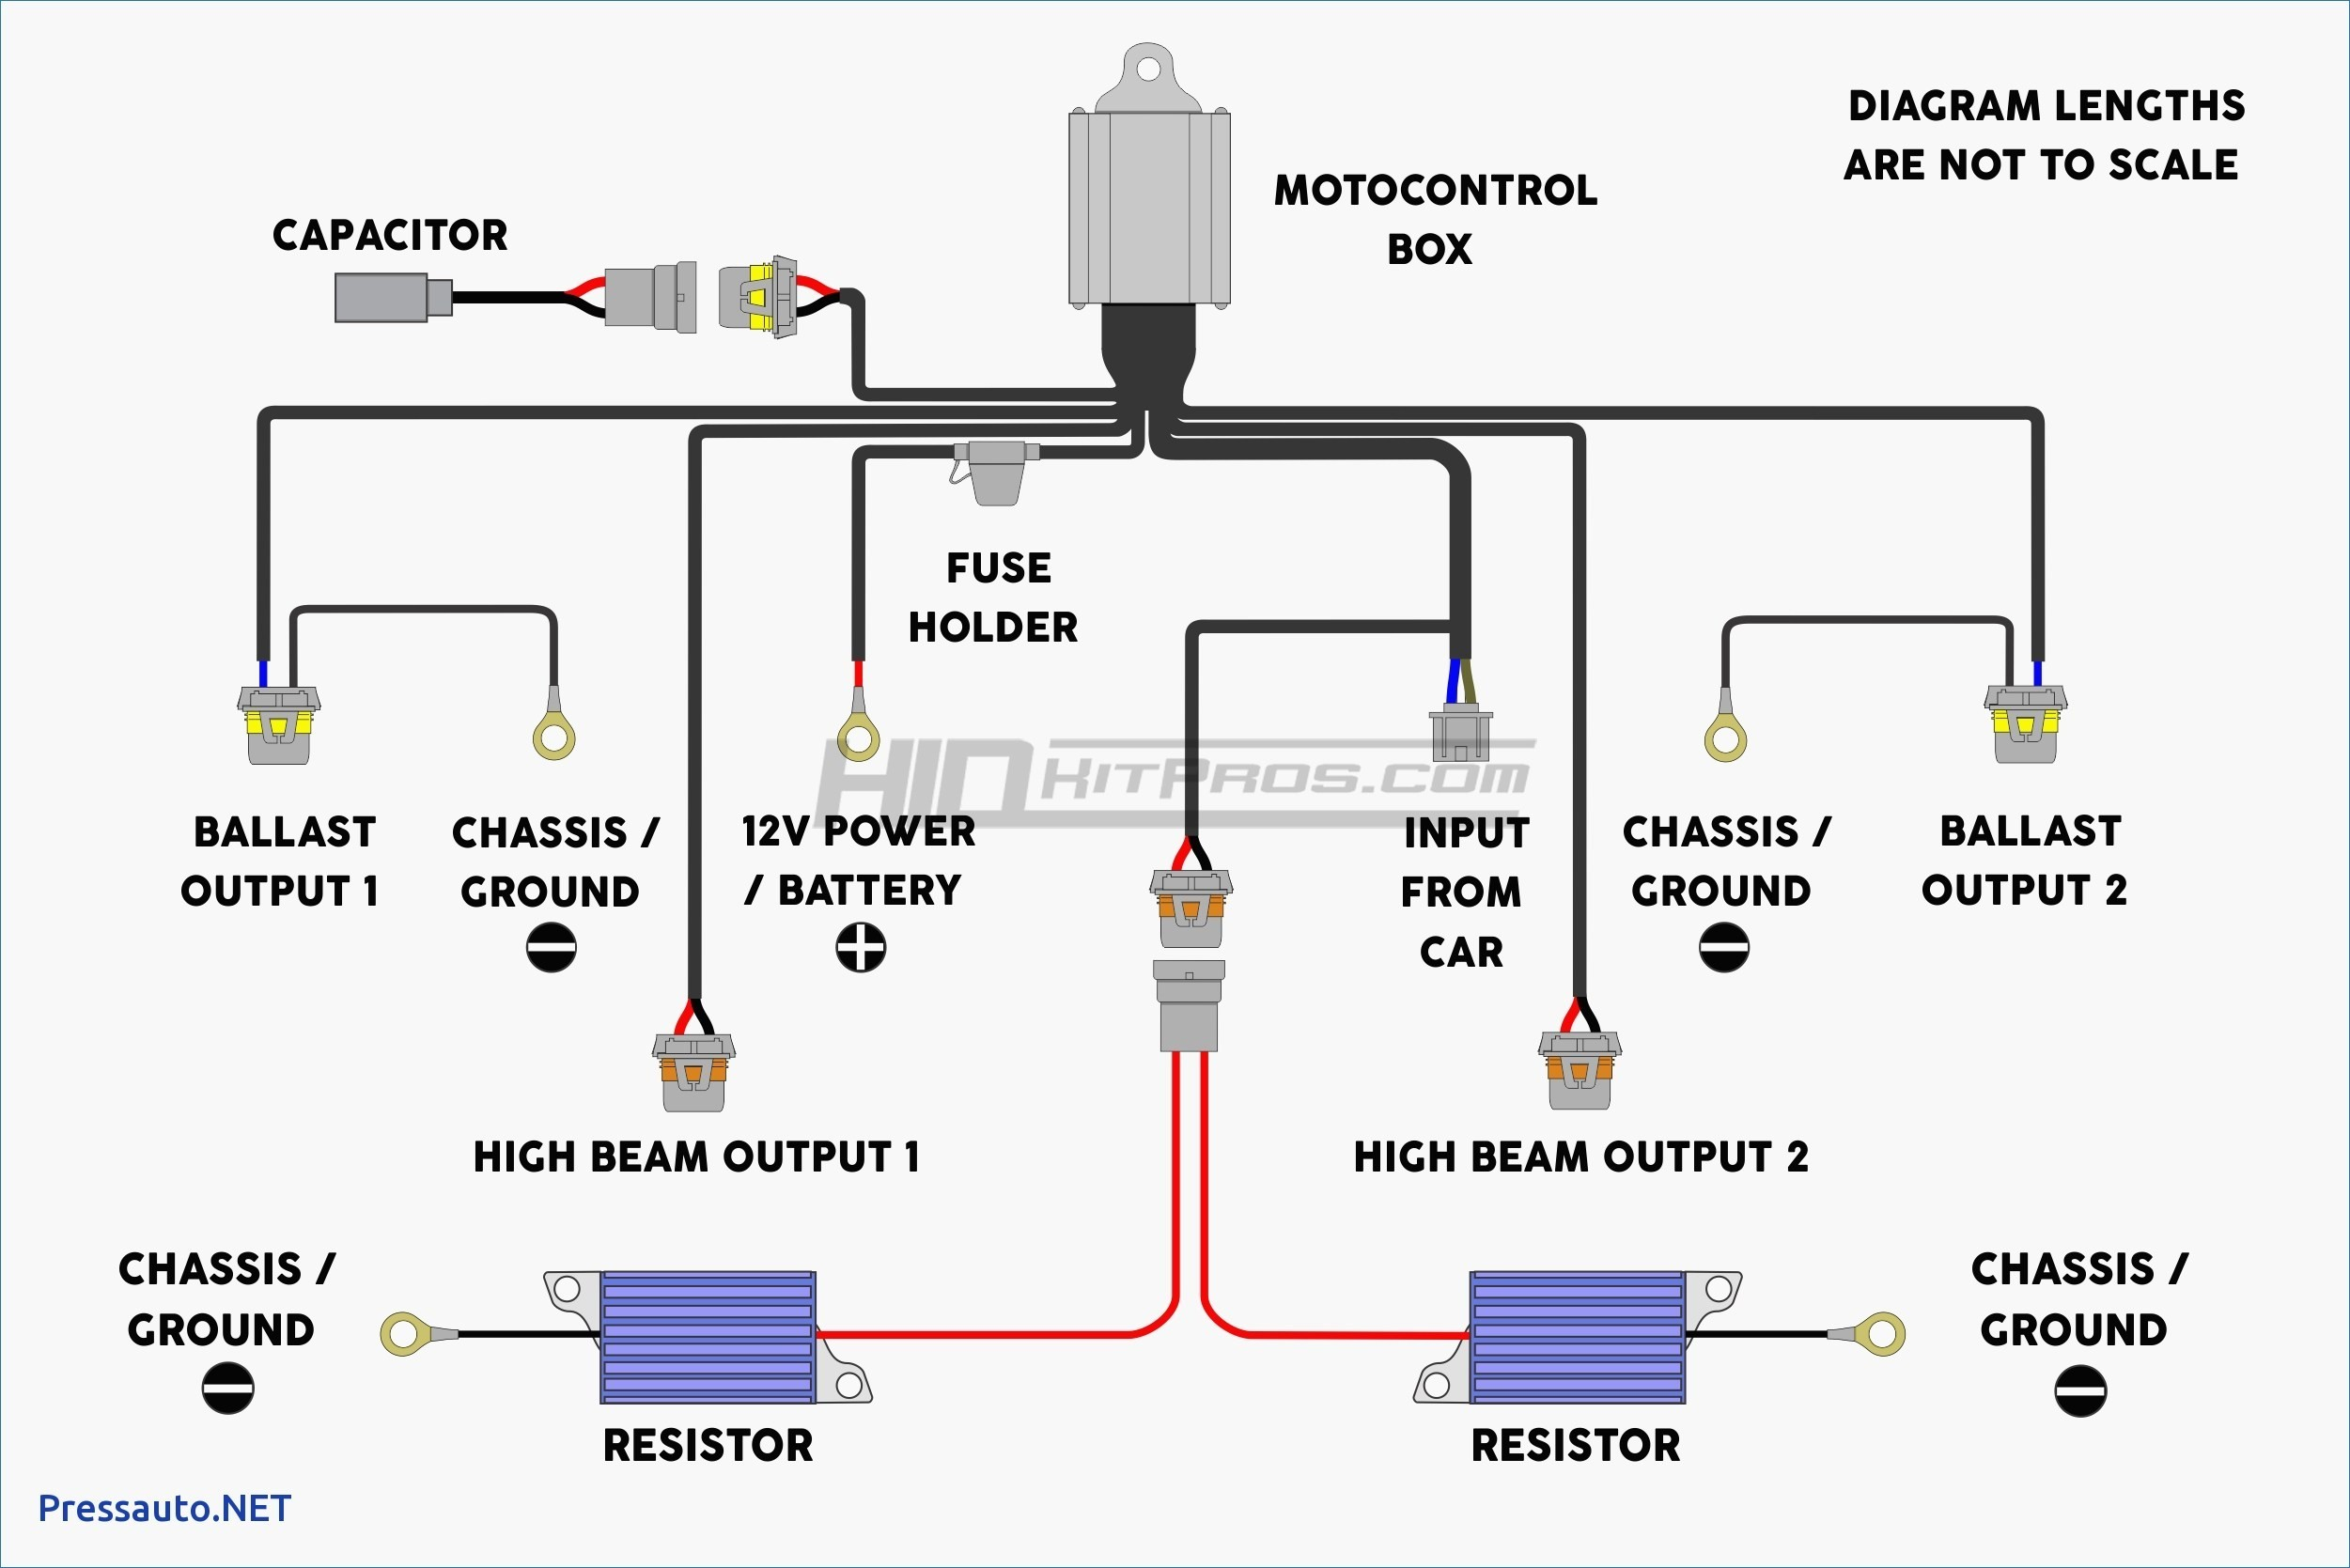 E60 Meyer Plow Wiring Diagram